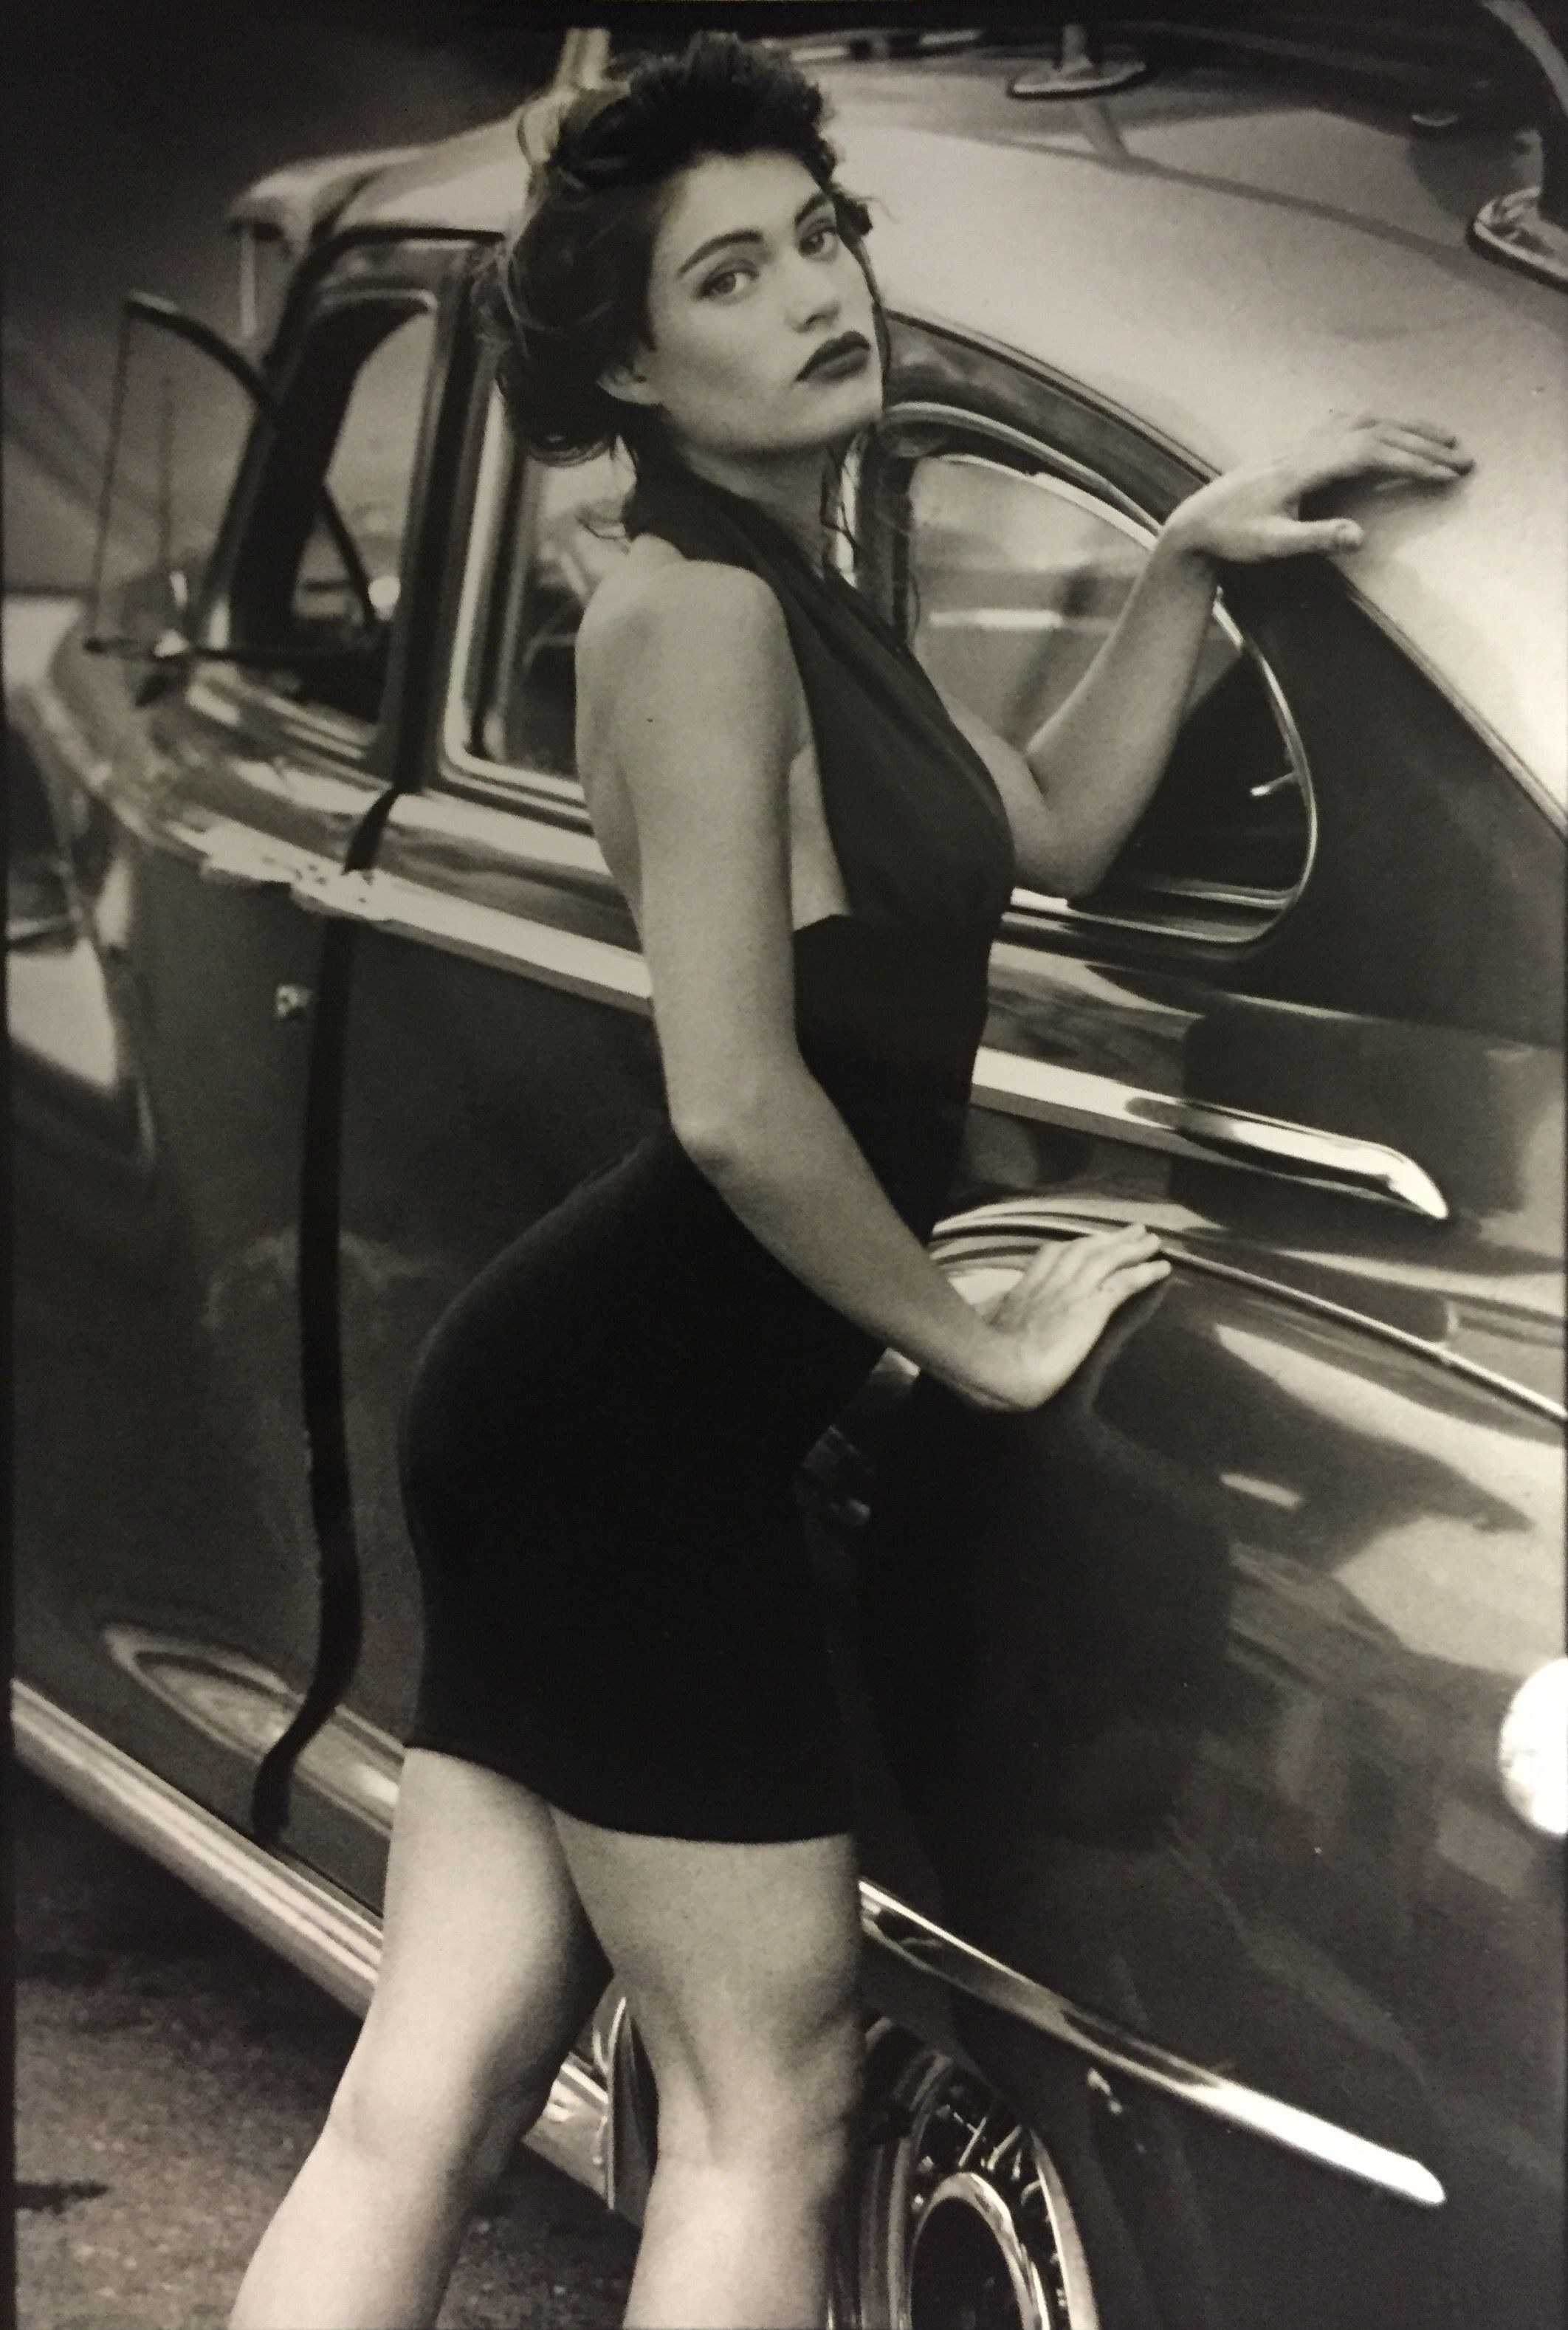 Black and white image of Kimberly Guilfoyle. Kimberly Guilfoyle modeled for clothes, swimwear, and lingerie, including Victoria's Secret!